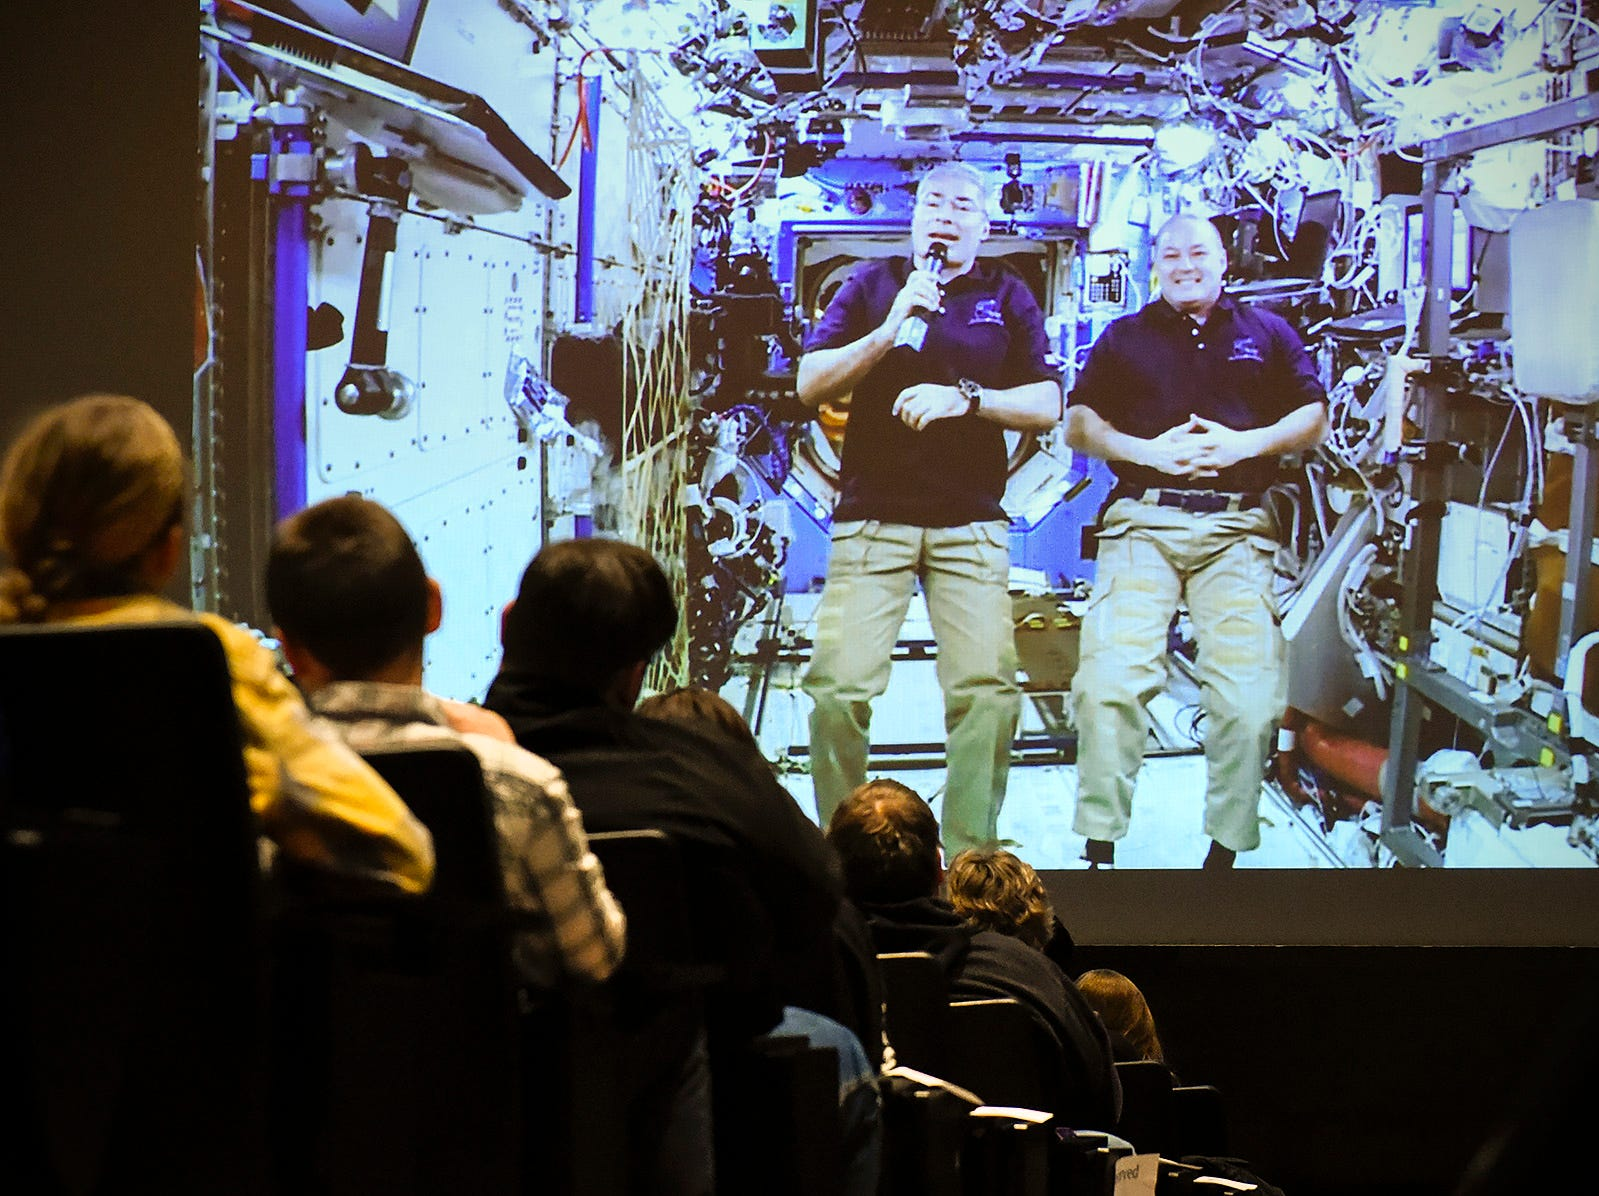 NASA astronauts Mark Vande Hei and Scott Tingle answer students questions from the International Space Station Tuesday, Feb. 20, at the Pellegrene Auditorium at St. John's University.